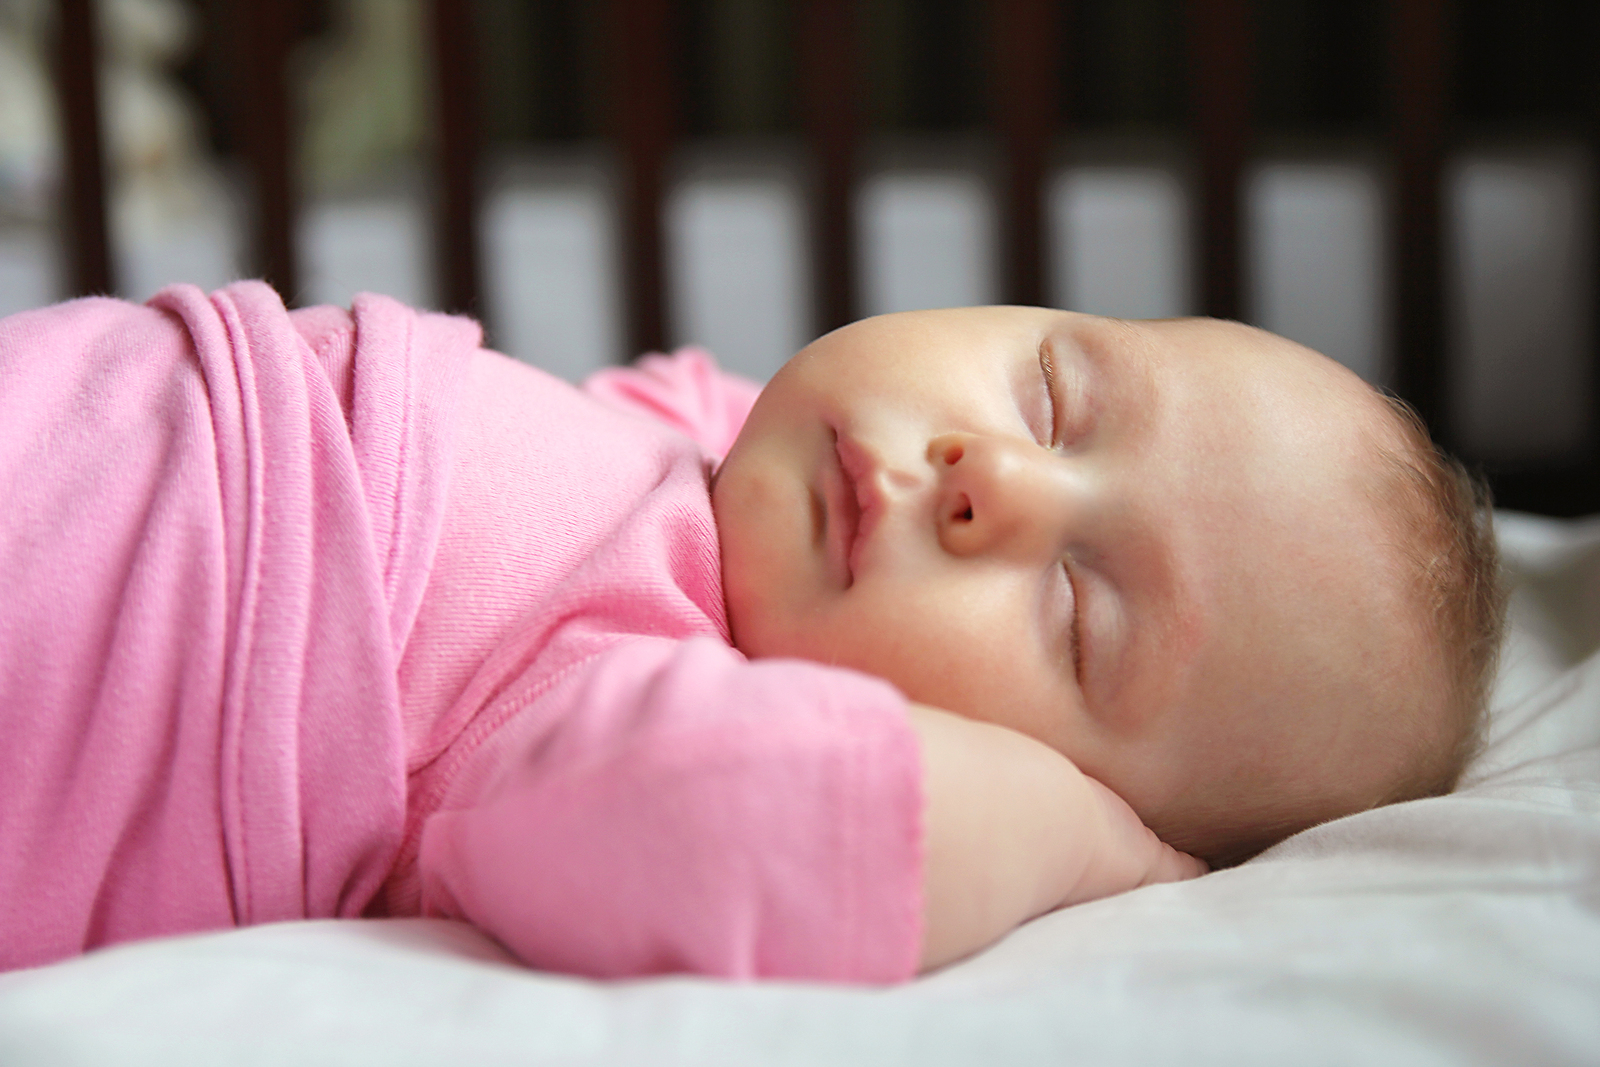 Study: Over Half of U.S. Moms Not Following Safe Sleeping Practices